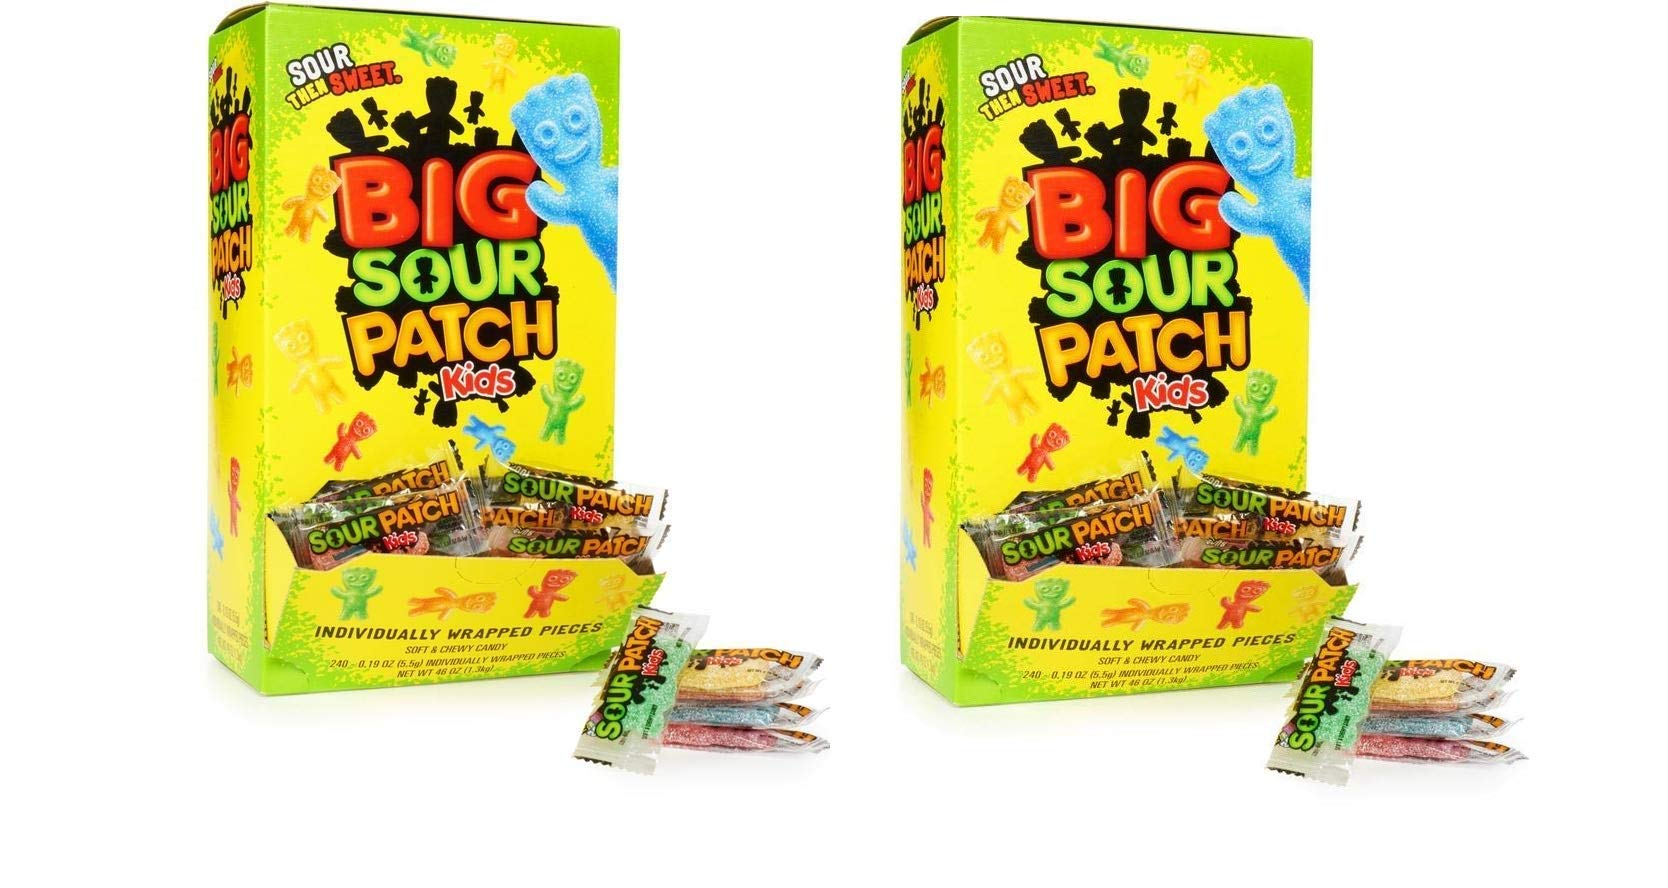 480-Count,Bulk Sour Patch Kids Sweet and Sour Halloween Candy, Trick or Treat Individually Wrapped Packs by Sour Patch